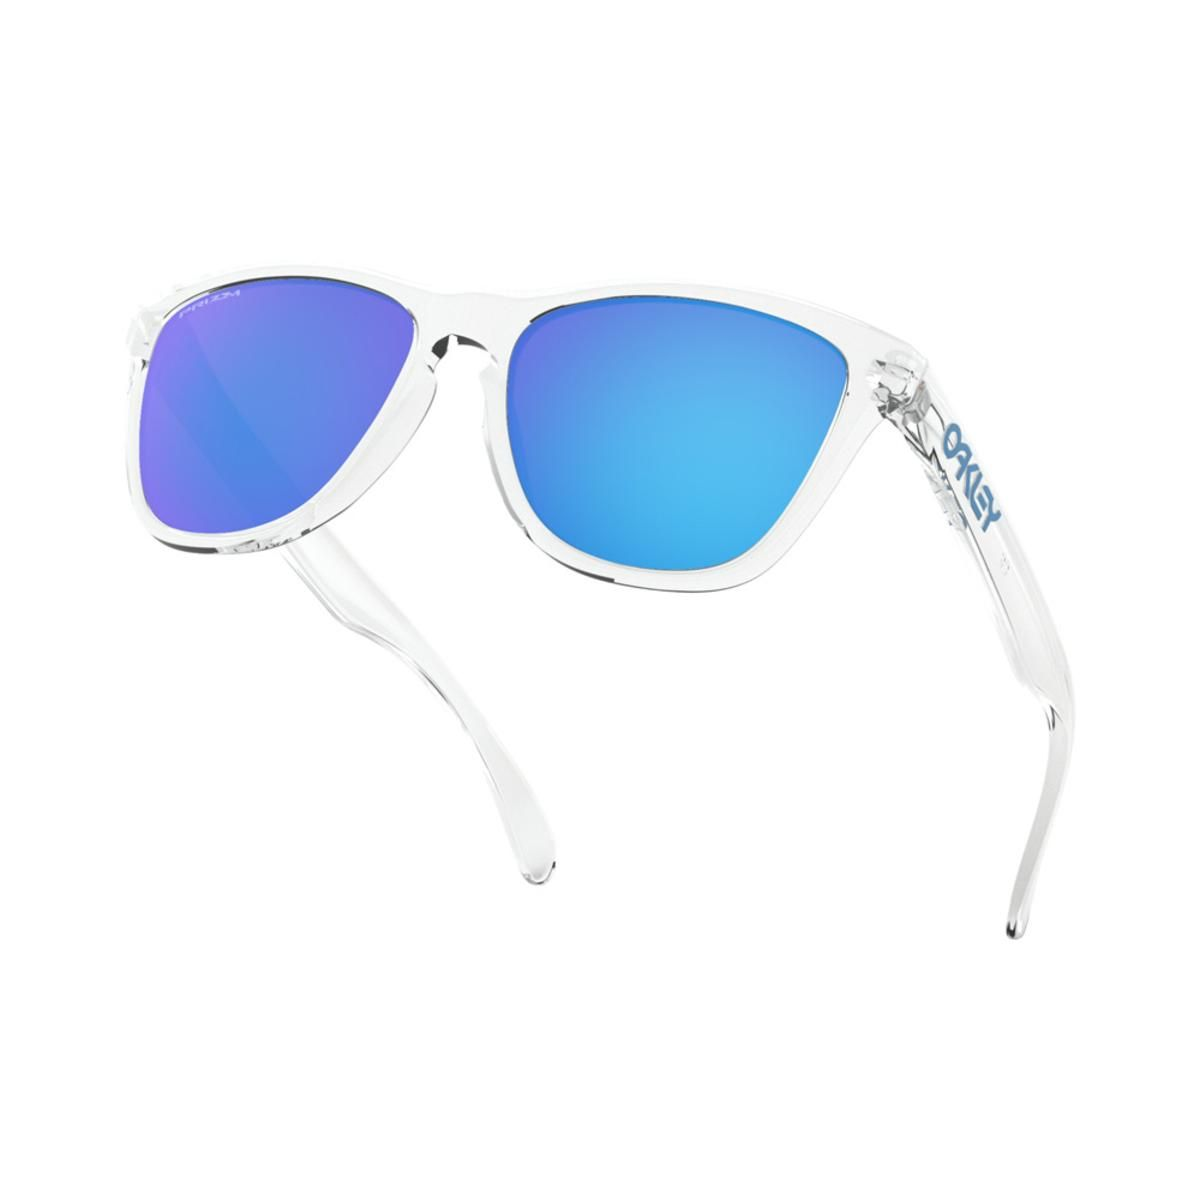 4c8576c134 Oakley Frogskins Crystal Clear Sunglasses w Prizm Sapphire - My ...